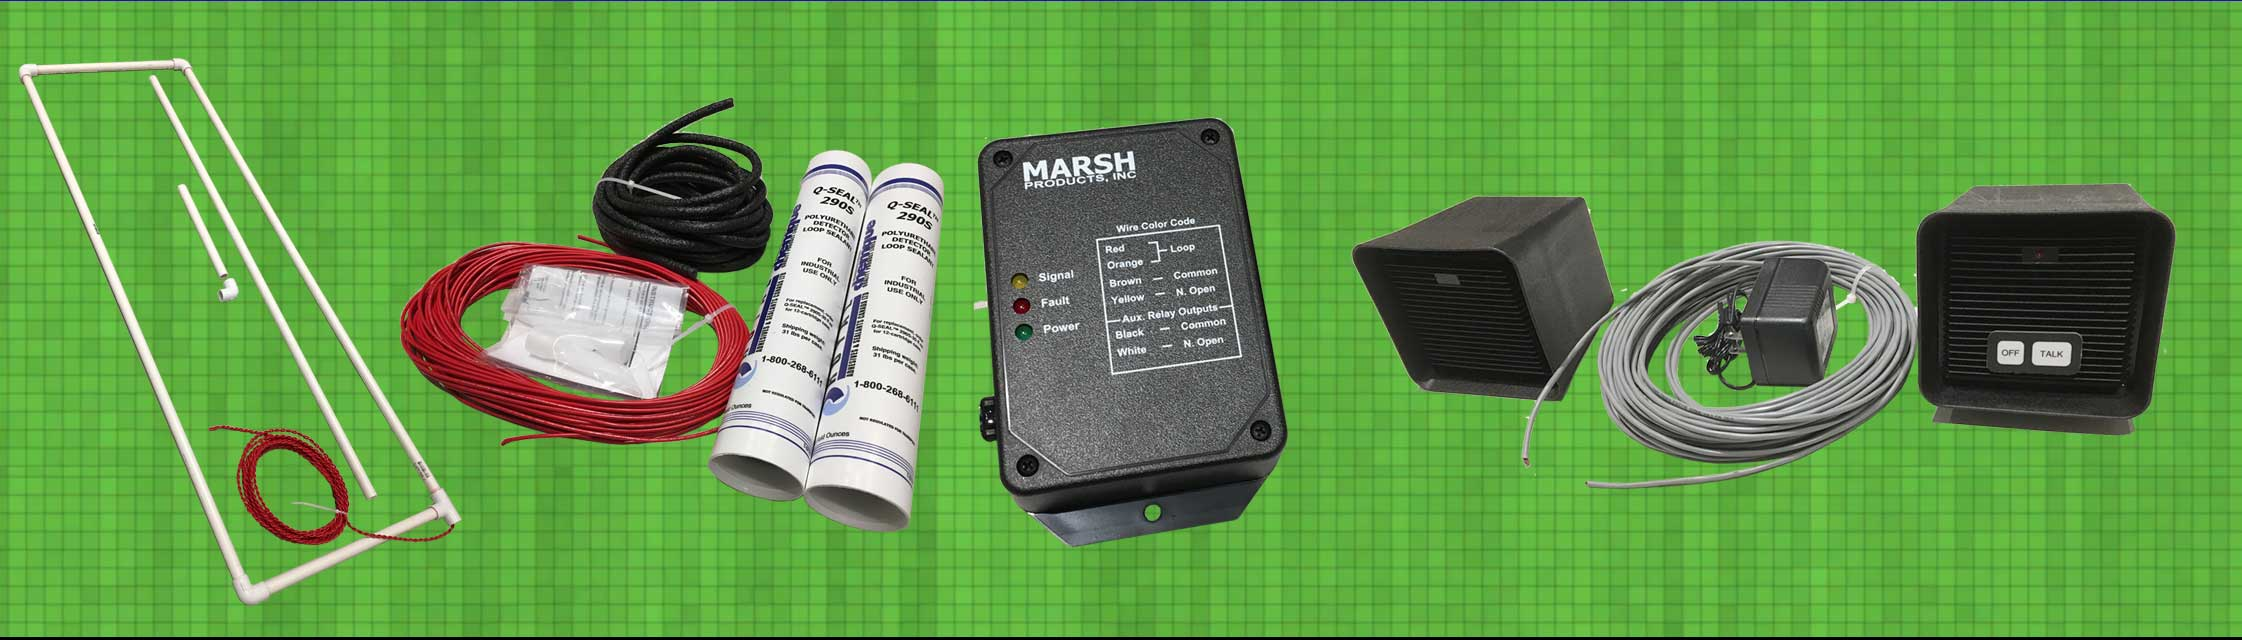 Marsh Products designs and manufactures a variety of products for the drive-thru industry. From left are our Preformed Loop, our Saw-Cut Loop Kit, our Vehicle Detector and our Alpha Audio Communication System.